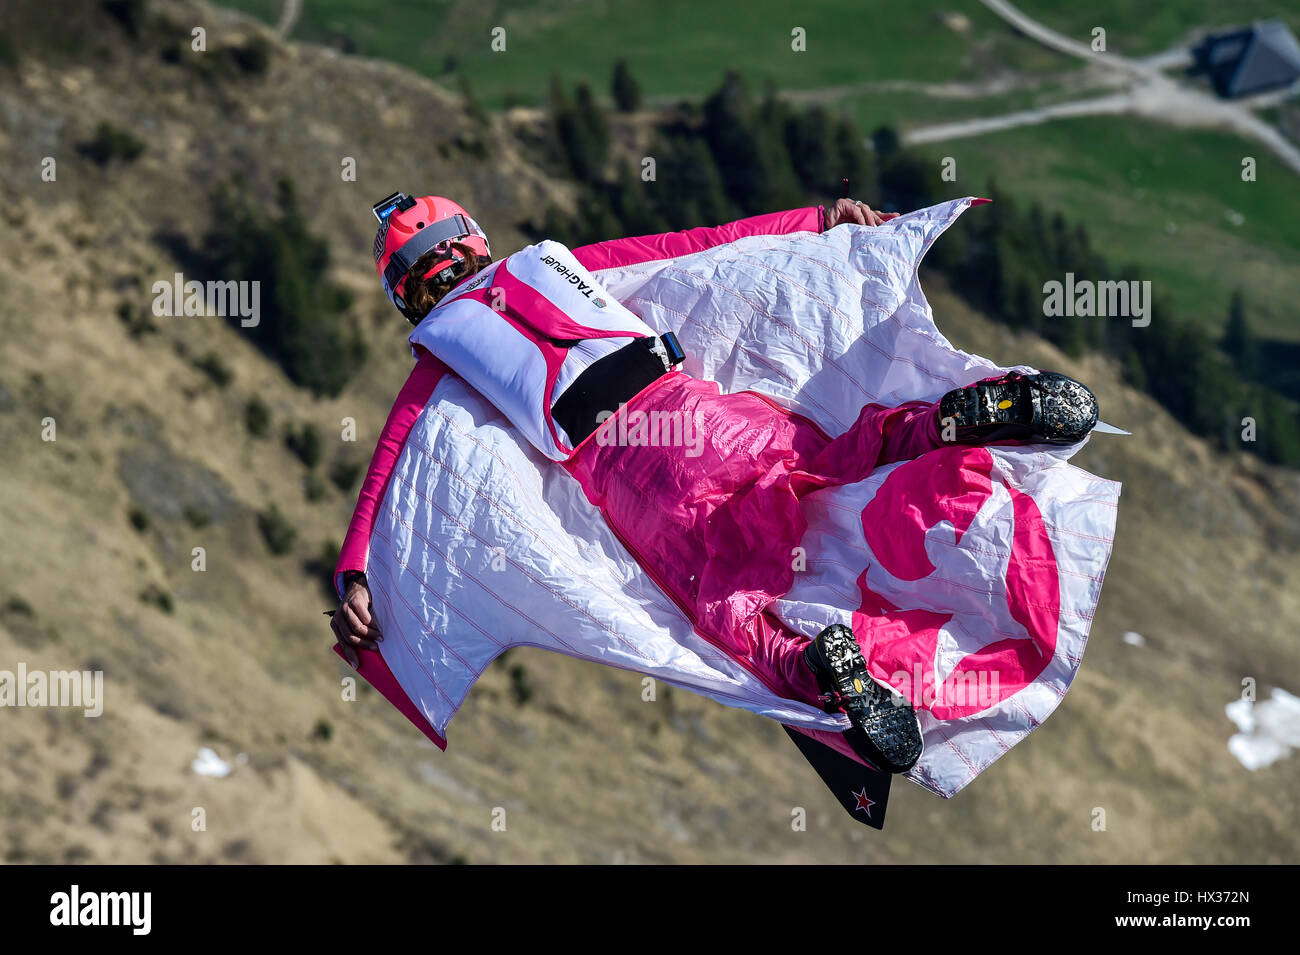 Base jumper flying with wingsuit in the air, jump from Mount Pilatus, Lucerne, Switzerland - Stock Image